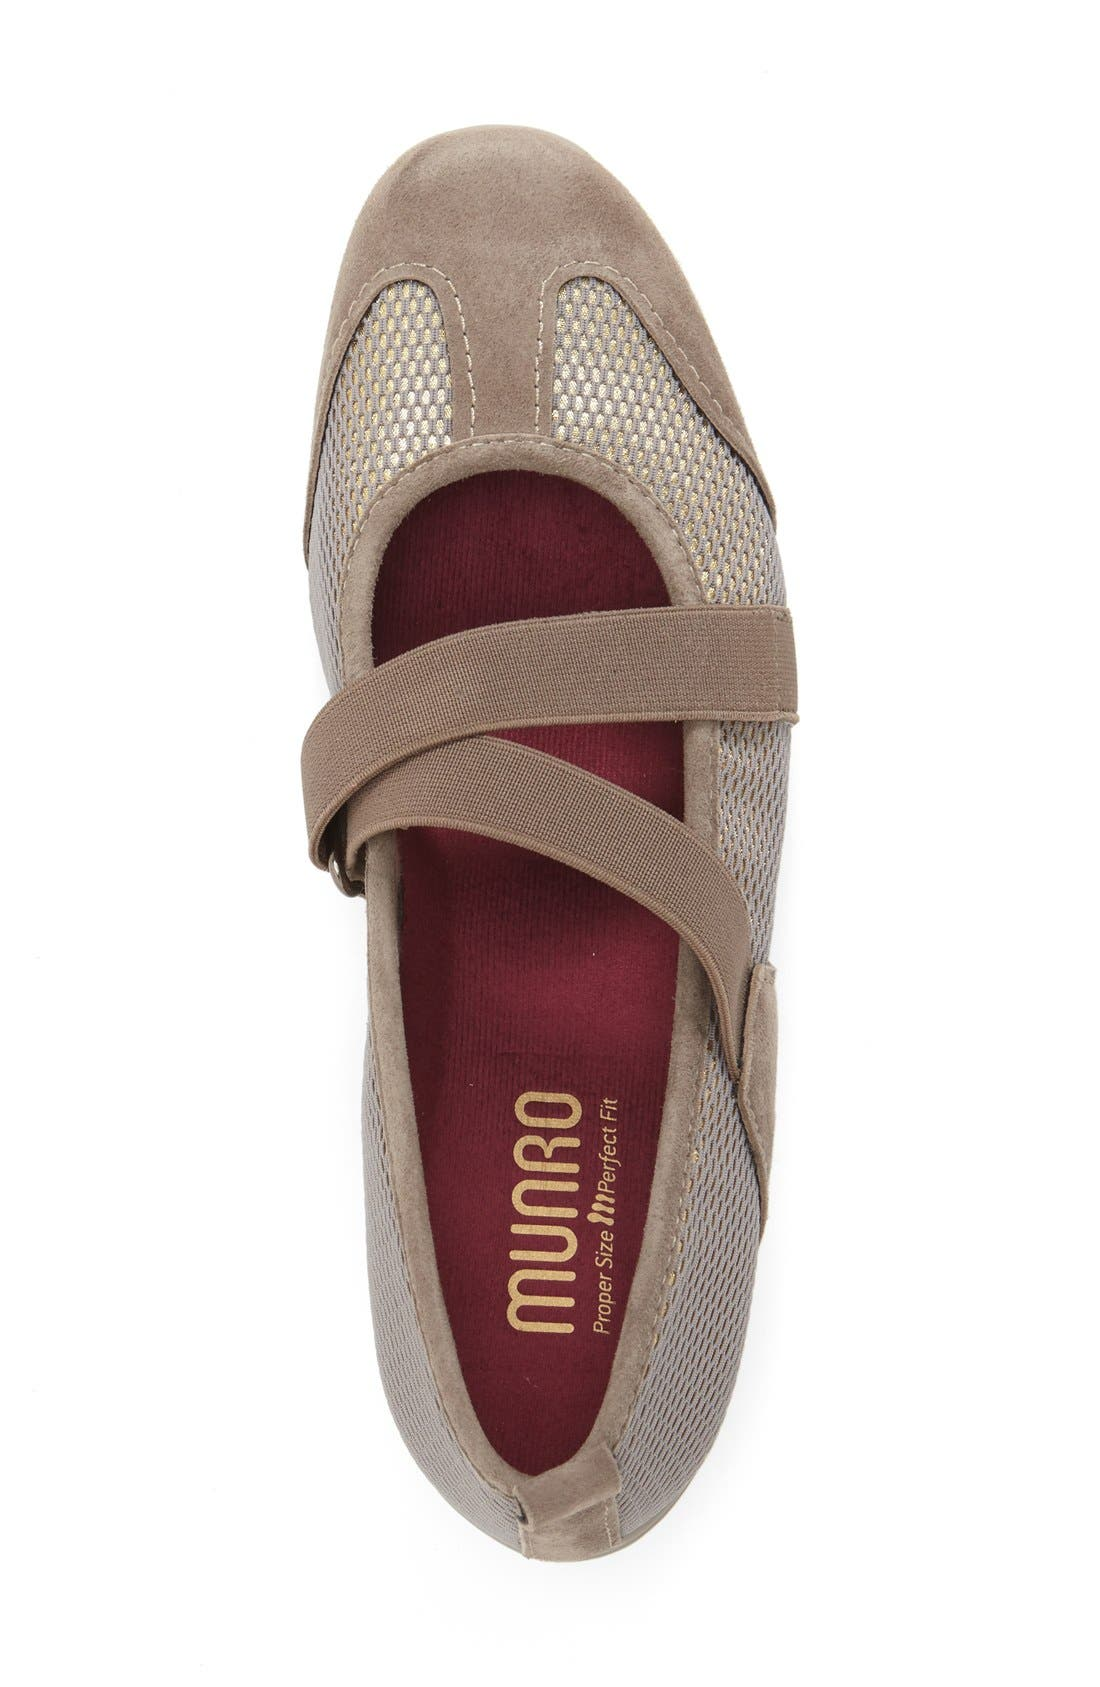 Alternate Image 3  - Munro 'Zip' Mary Jane Flat (Women)